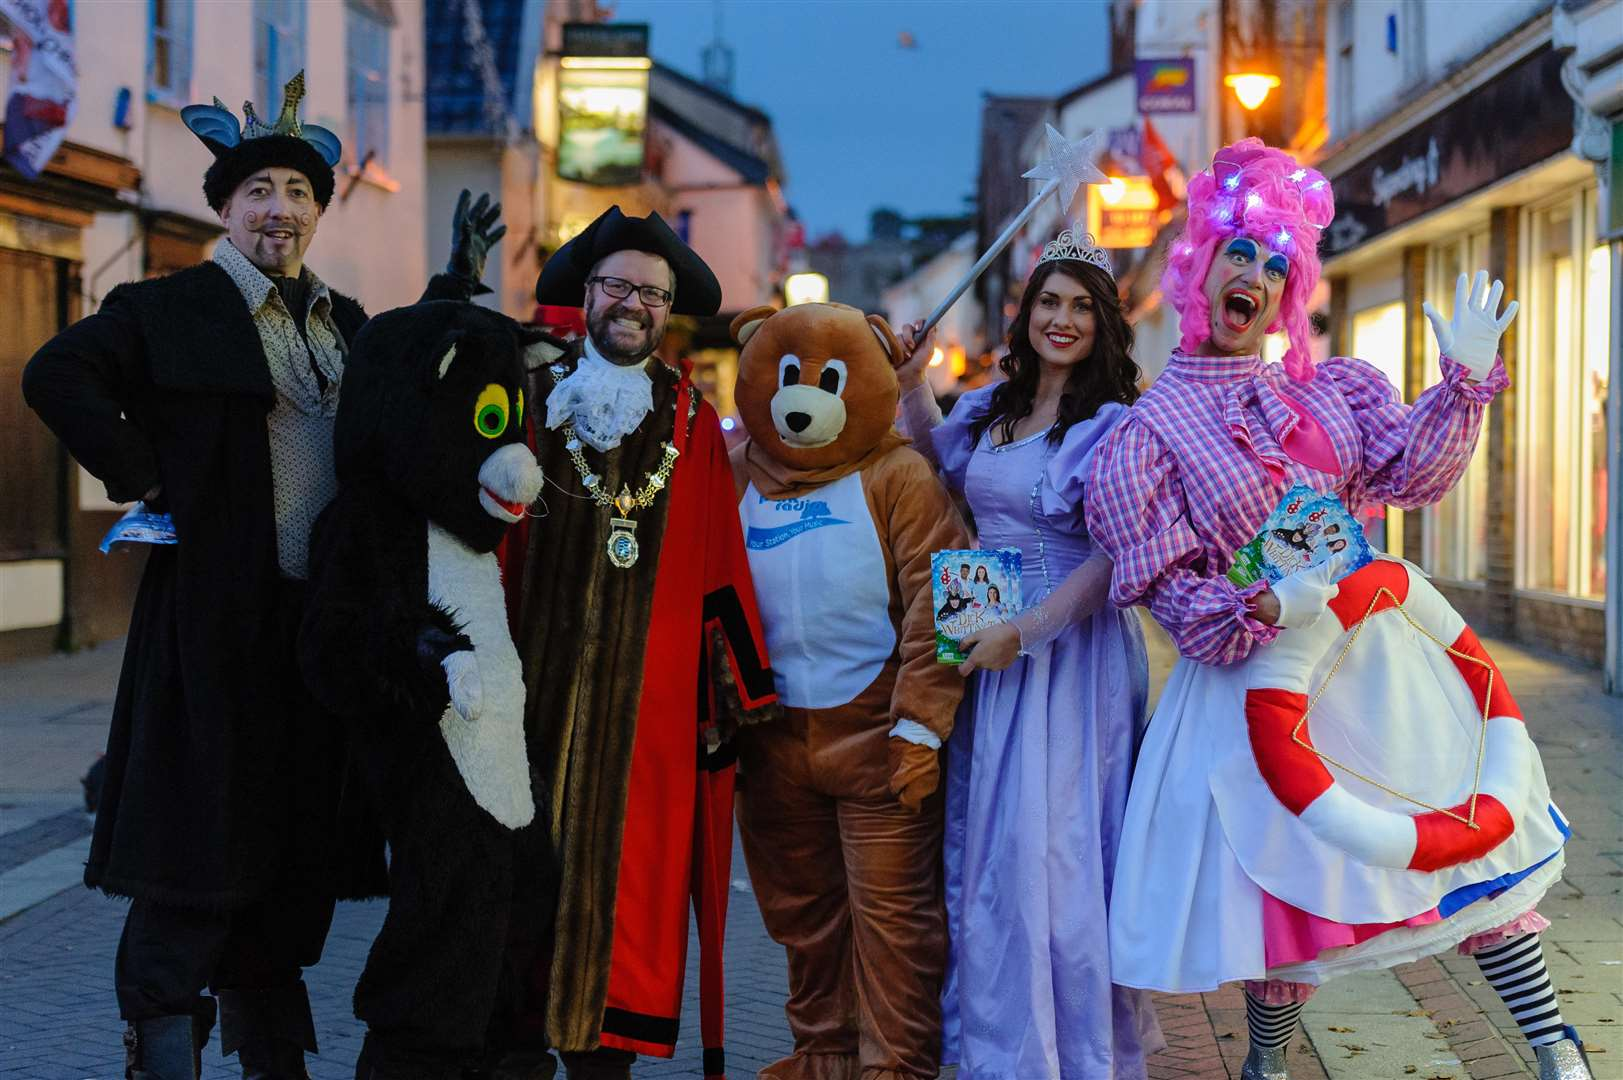 Diss Christmas Lights Switch On - The cast of Dick Whitington who are performing at the Corn Hall and Diss Town Mayor with Parky the Bear. ..Picture by Mark Bullimore Photography. (5594216)